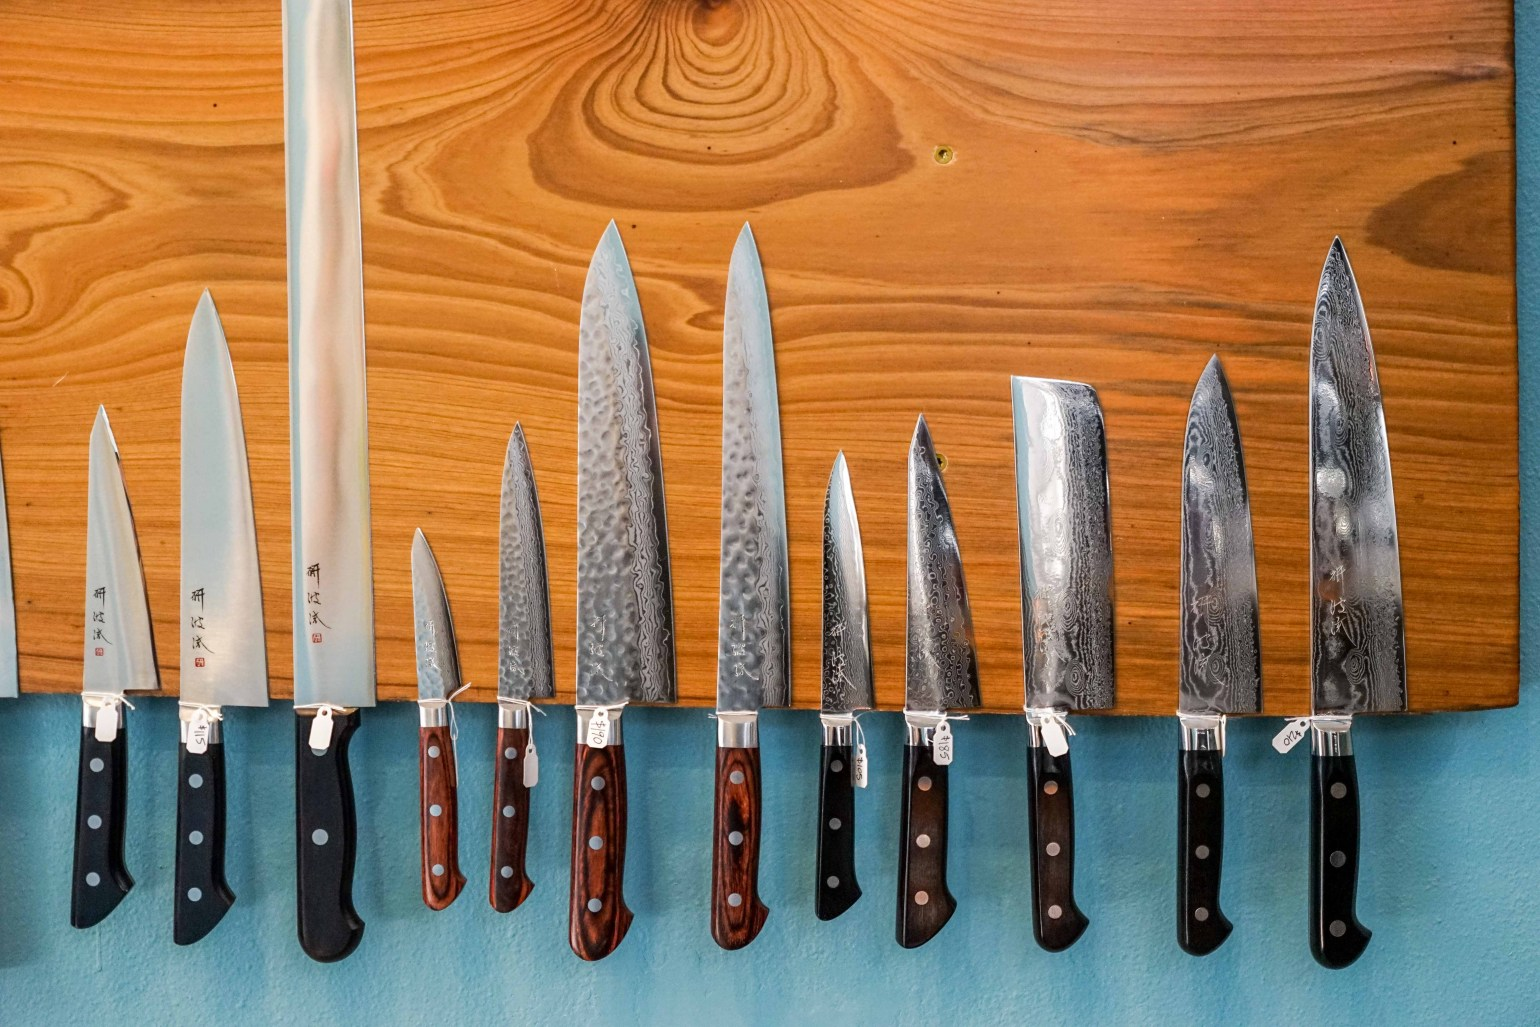 How happy was I to discover a brand new spot on Oak Street -- Coutelier NOLA is the boutique for professional Japanese cutlery -- amazing carbon steel knives, knife rolls, aprons, chef and bartender tools, and books and magazines of interest to the serious foodie or food/beverage professional.